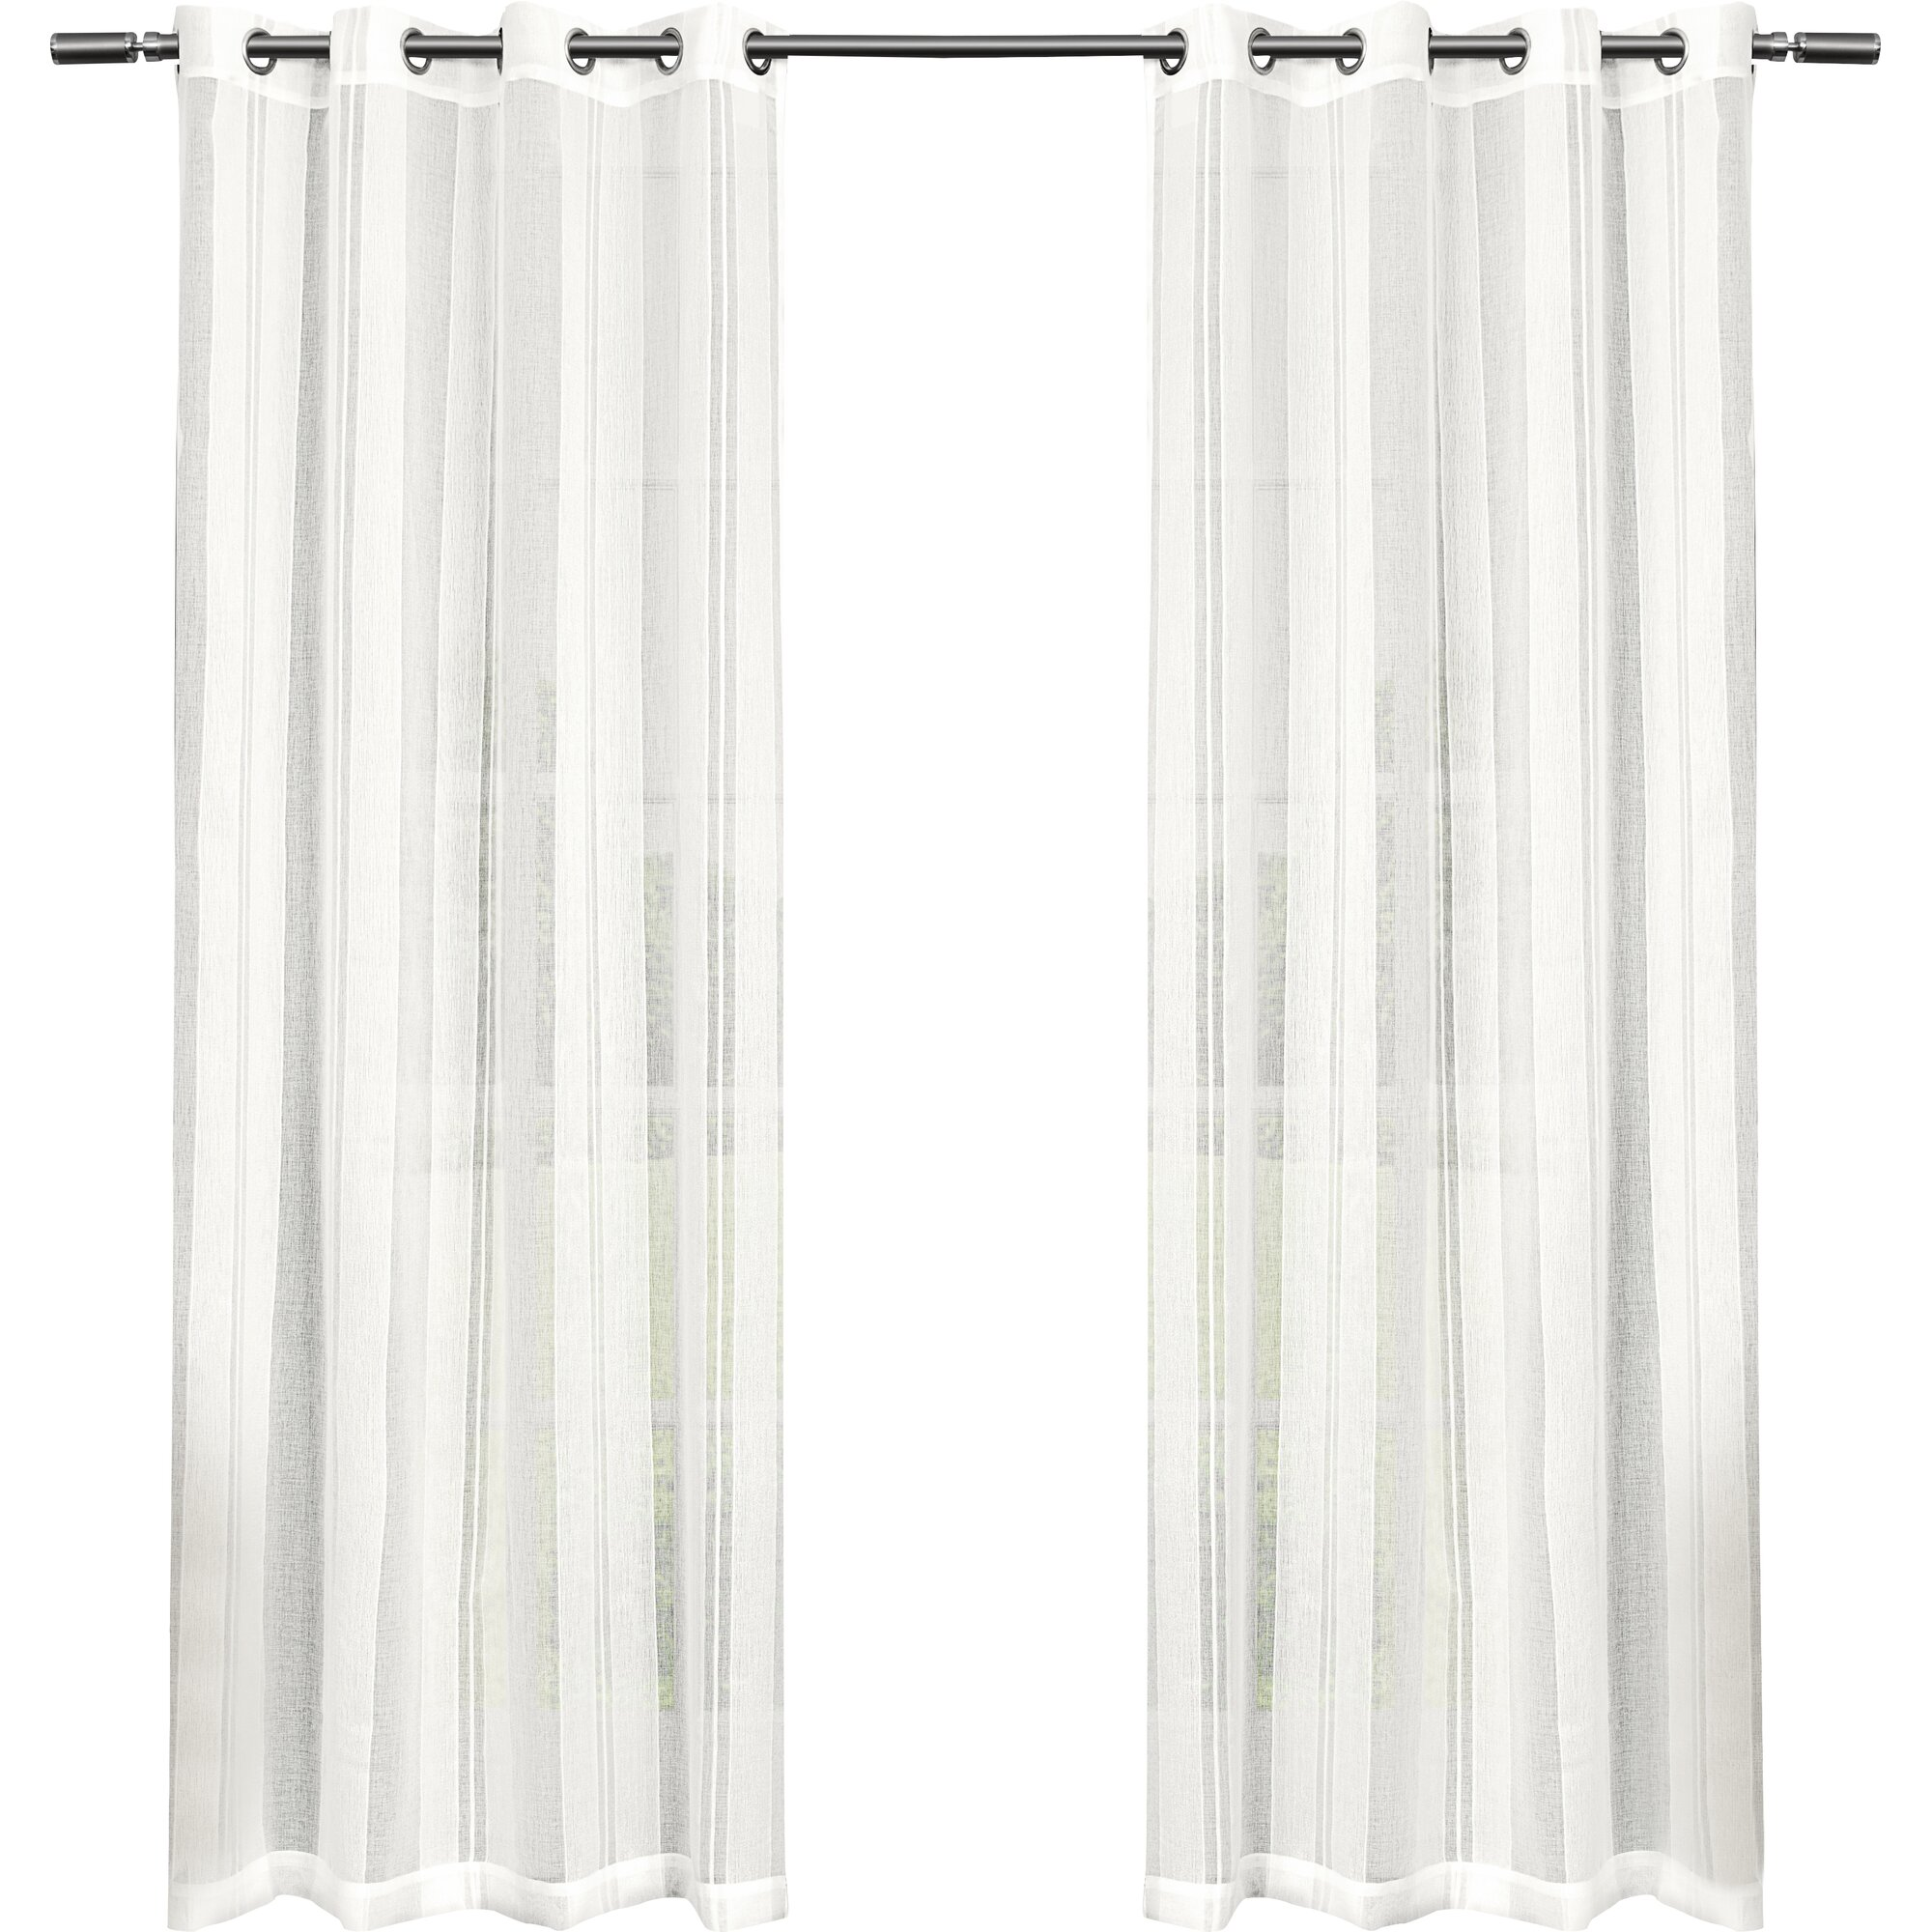 Grommet curtains pattern grommet curtain single - Bird Curtain Panels